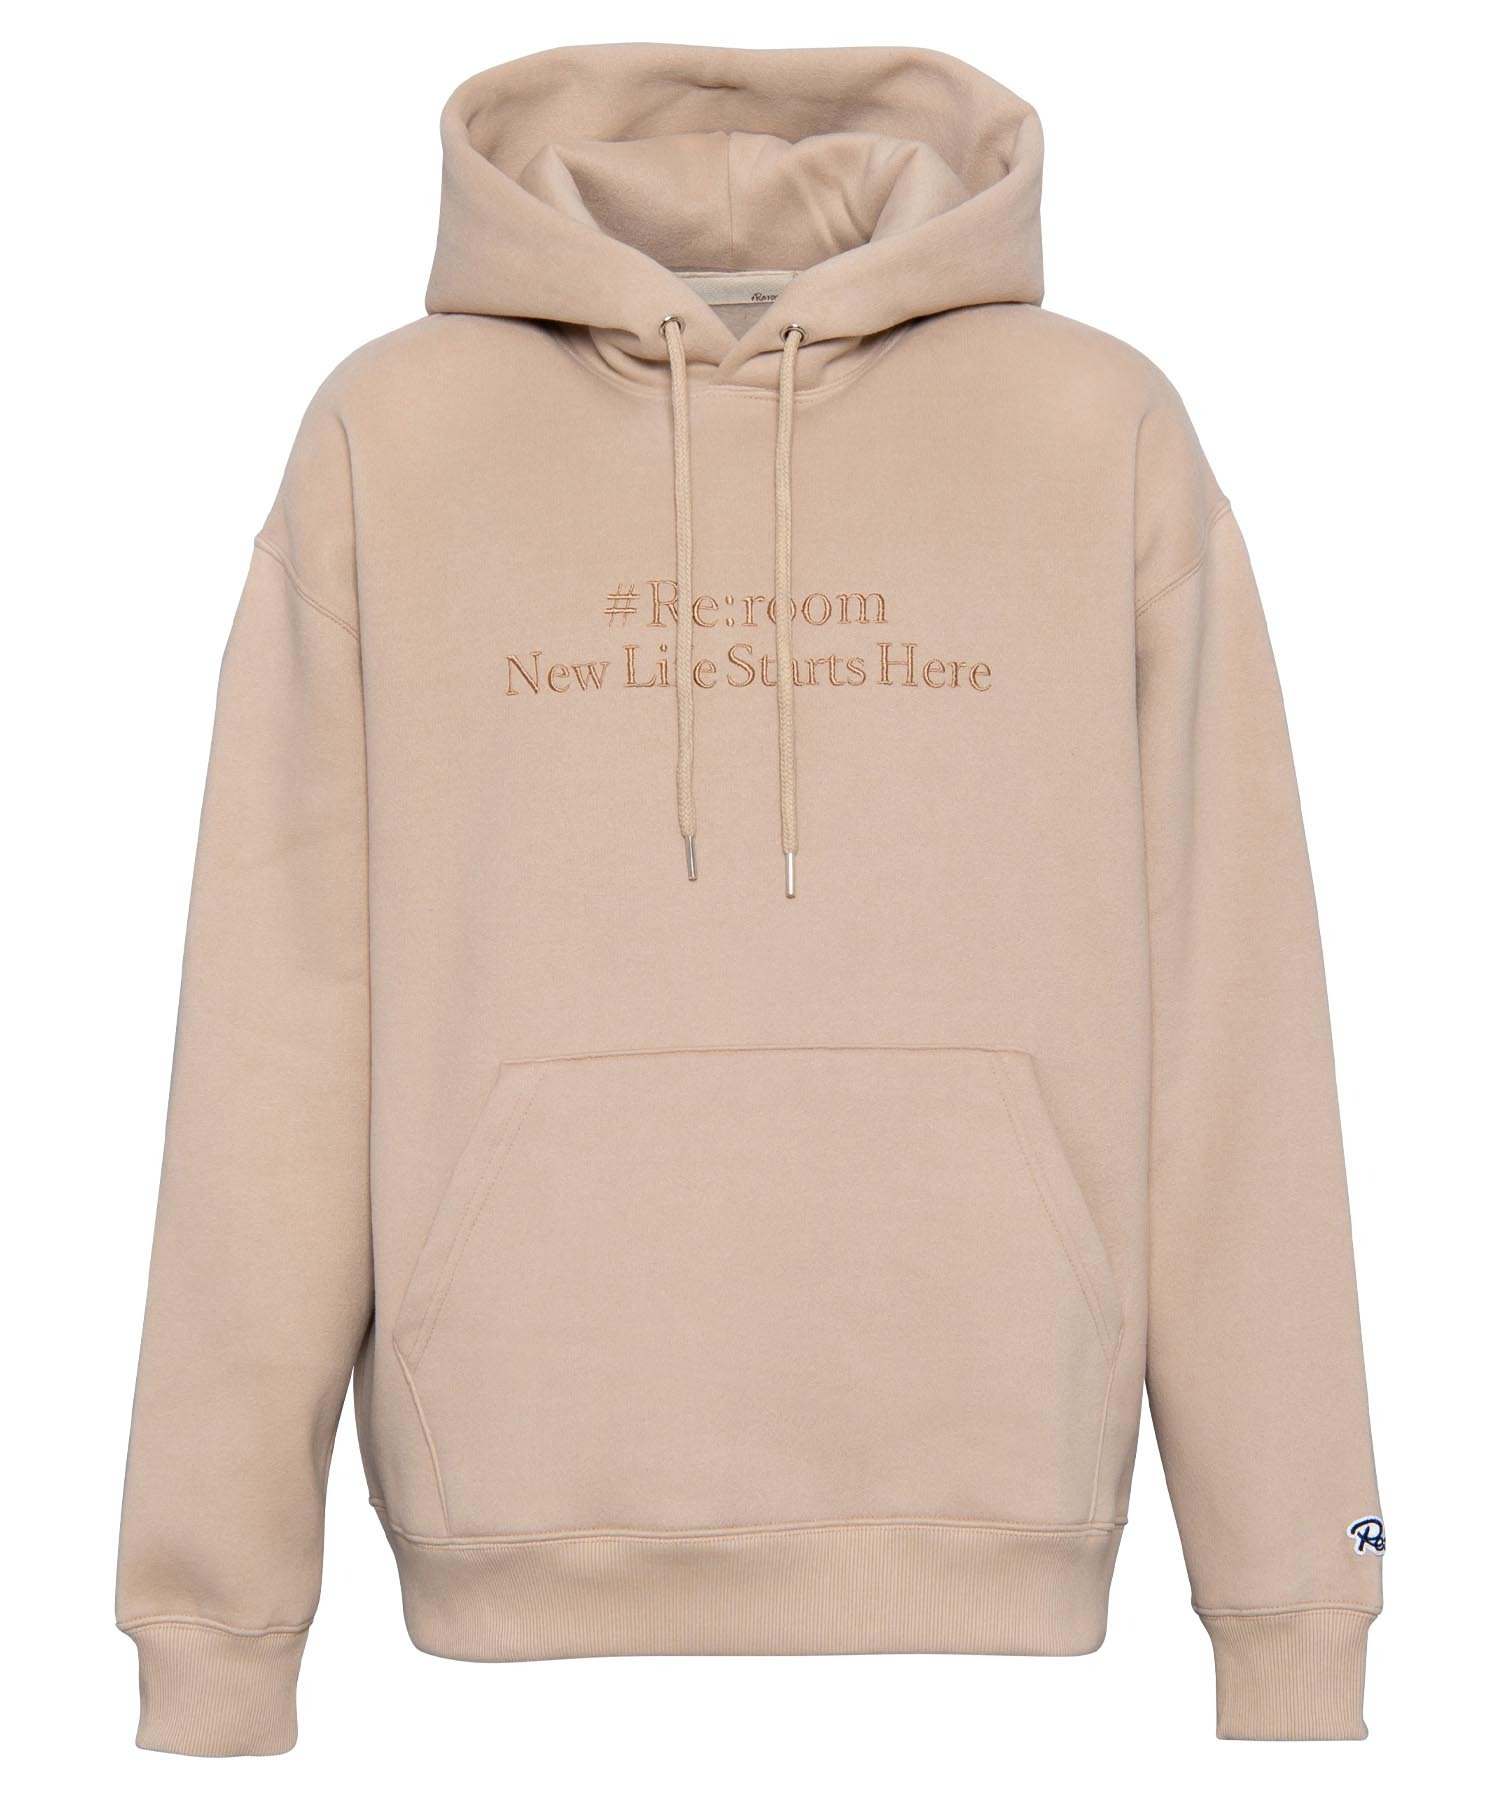 EMBROIDERY MESSAGE BIG SWEAT[REC333]